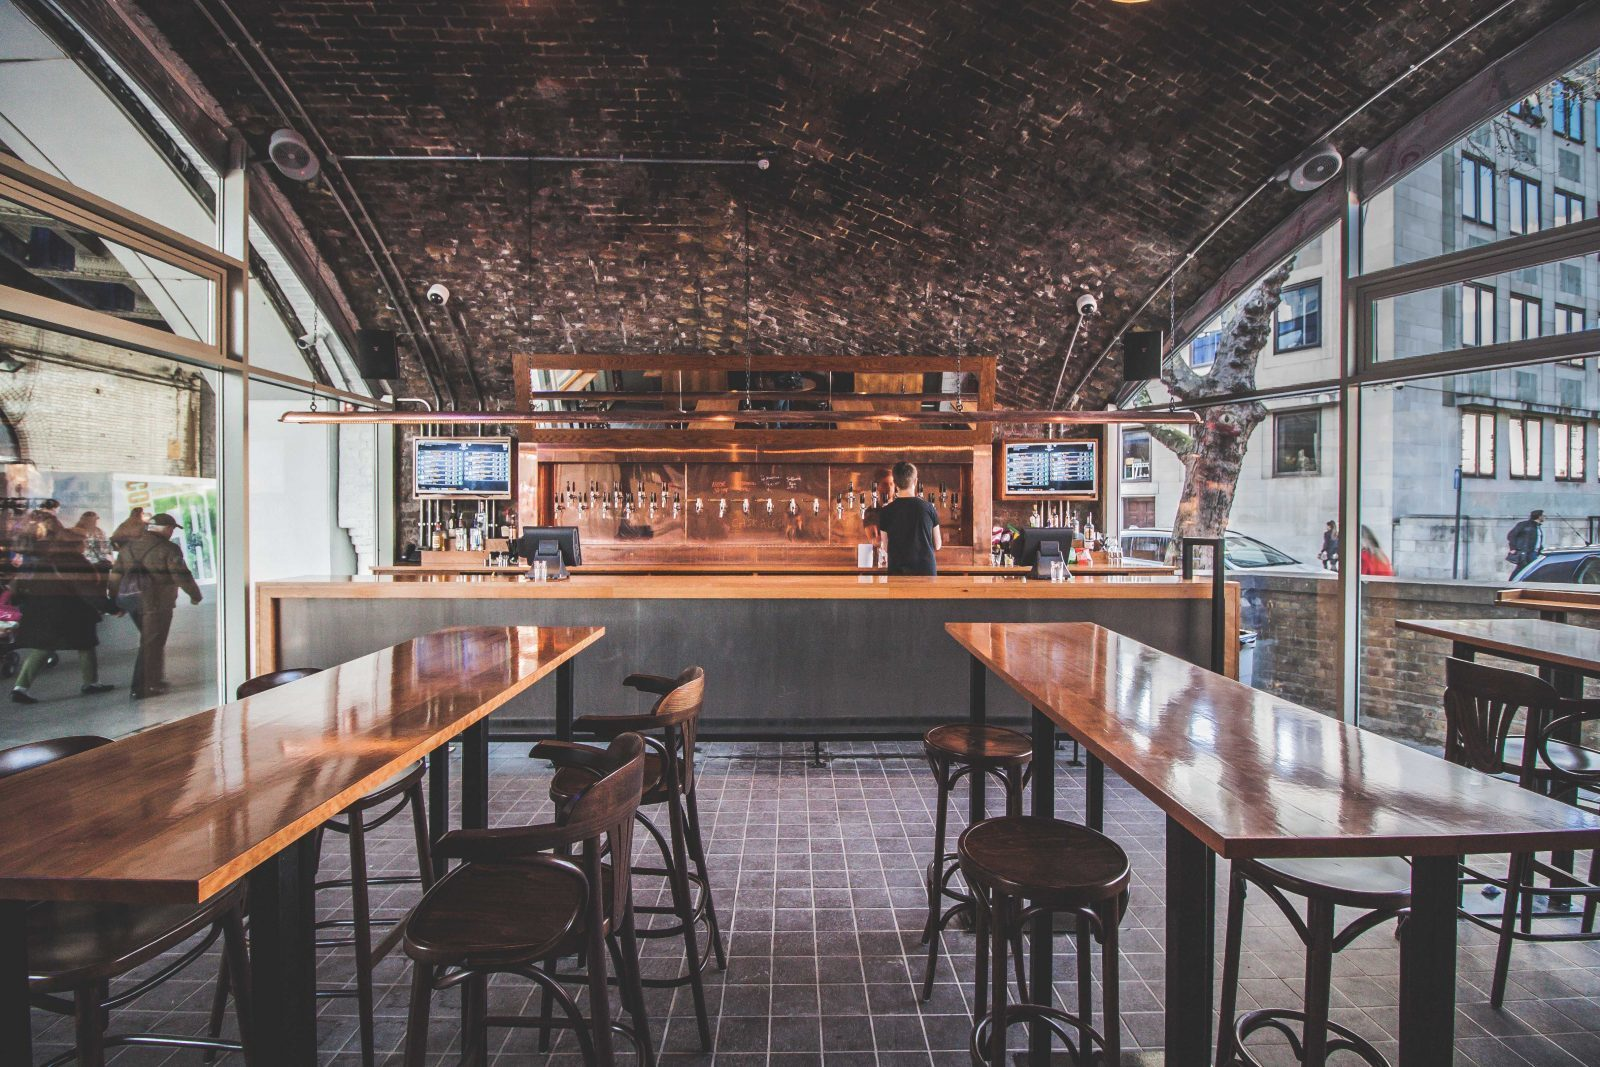 100 best bars and pubs in london, waterloo tap